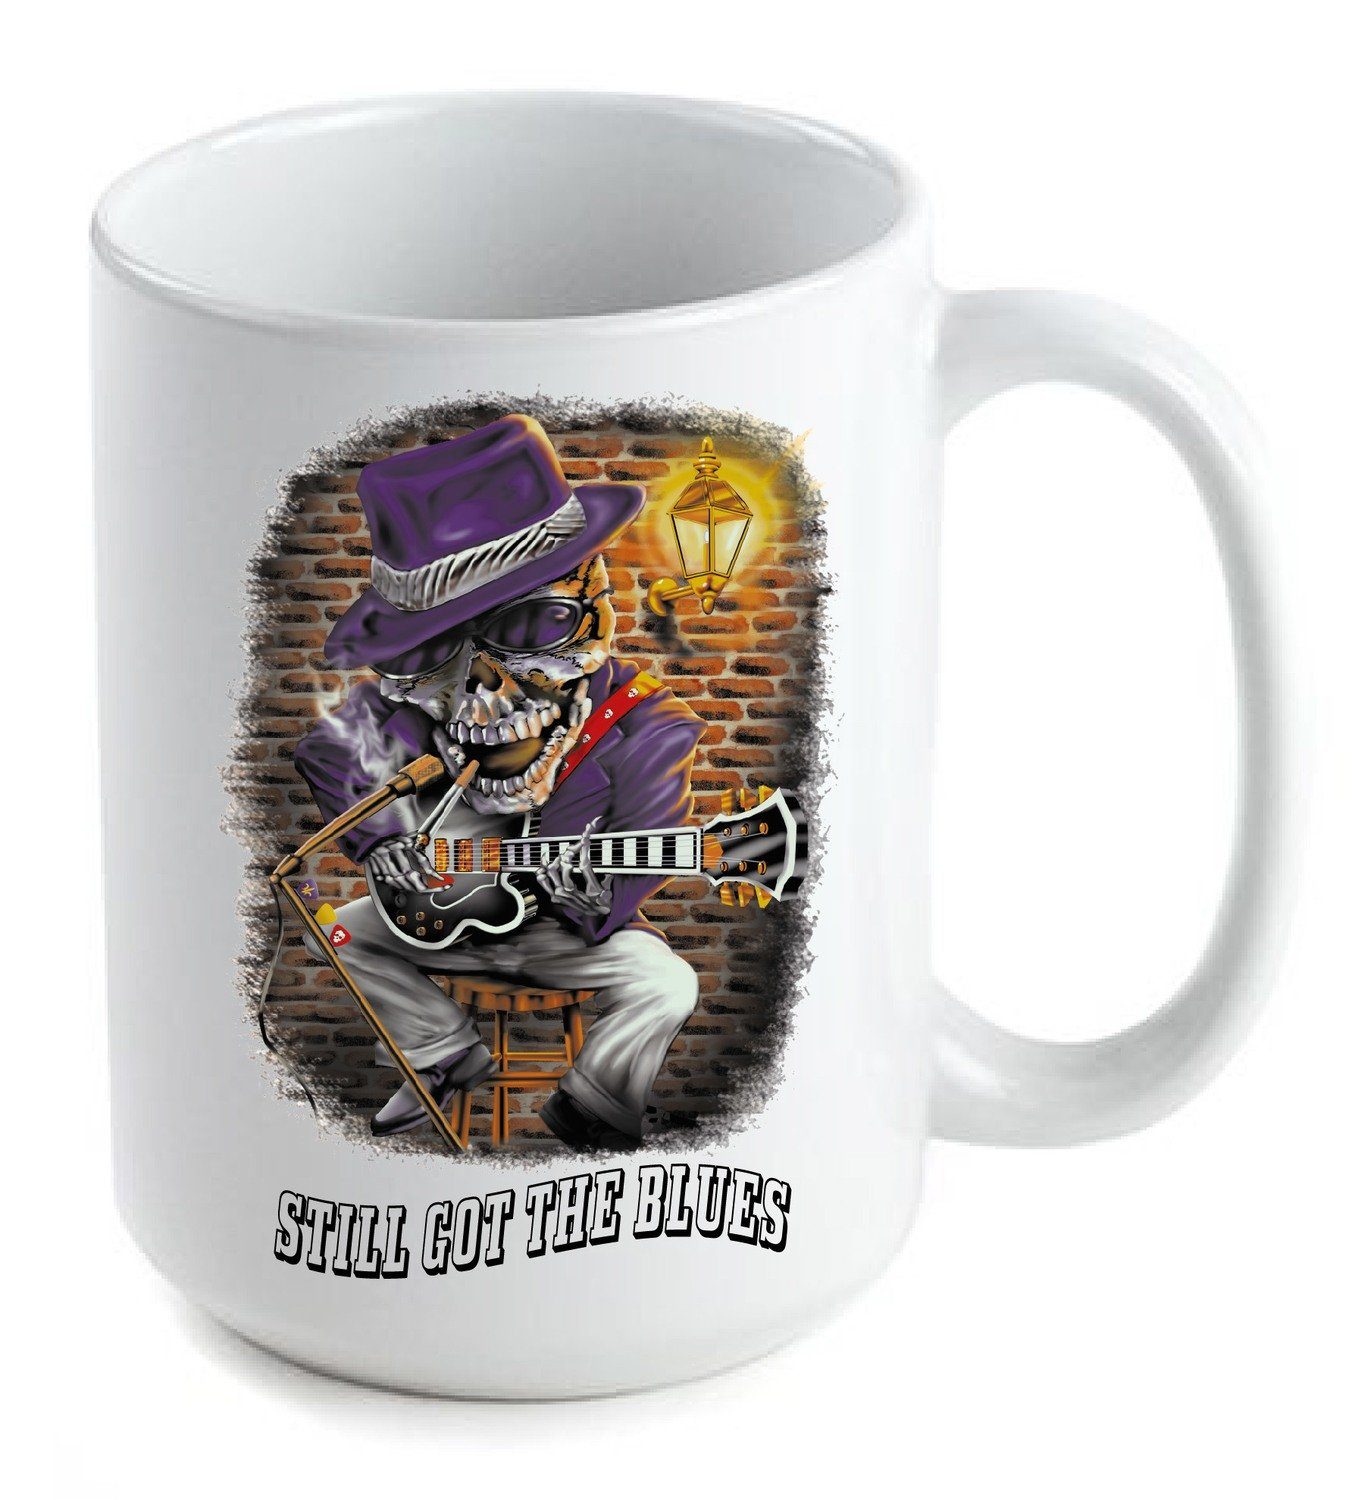 Still Got The Blues Coffee Mug 11oz-15oz FREE SHIPPING